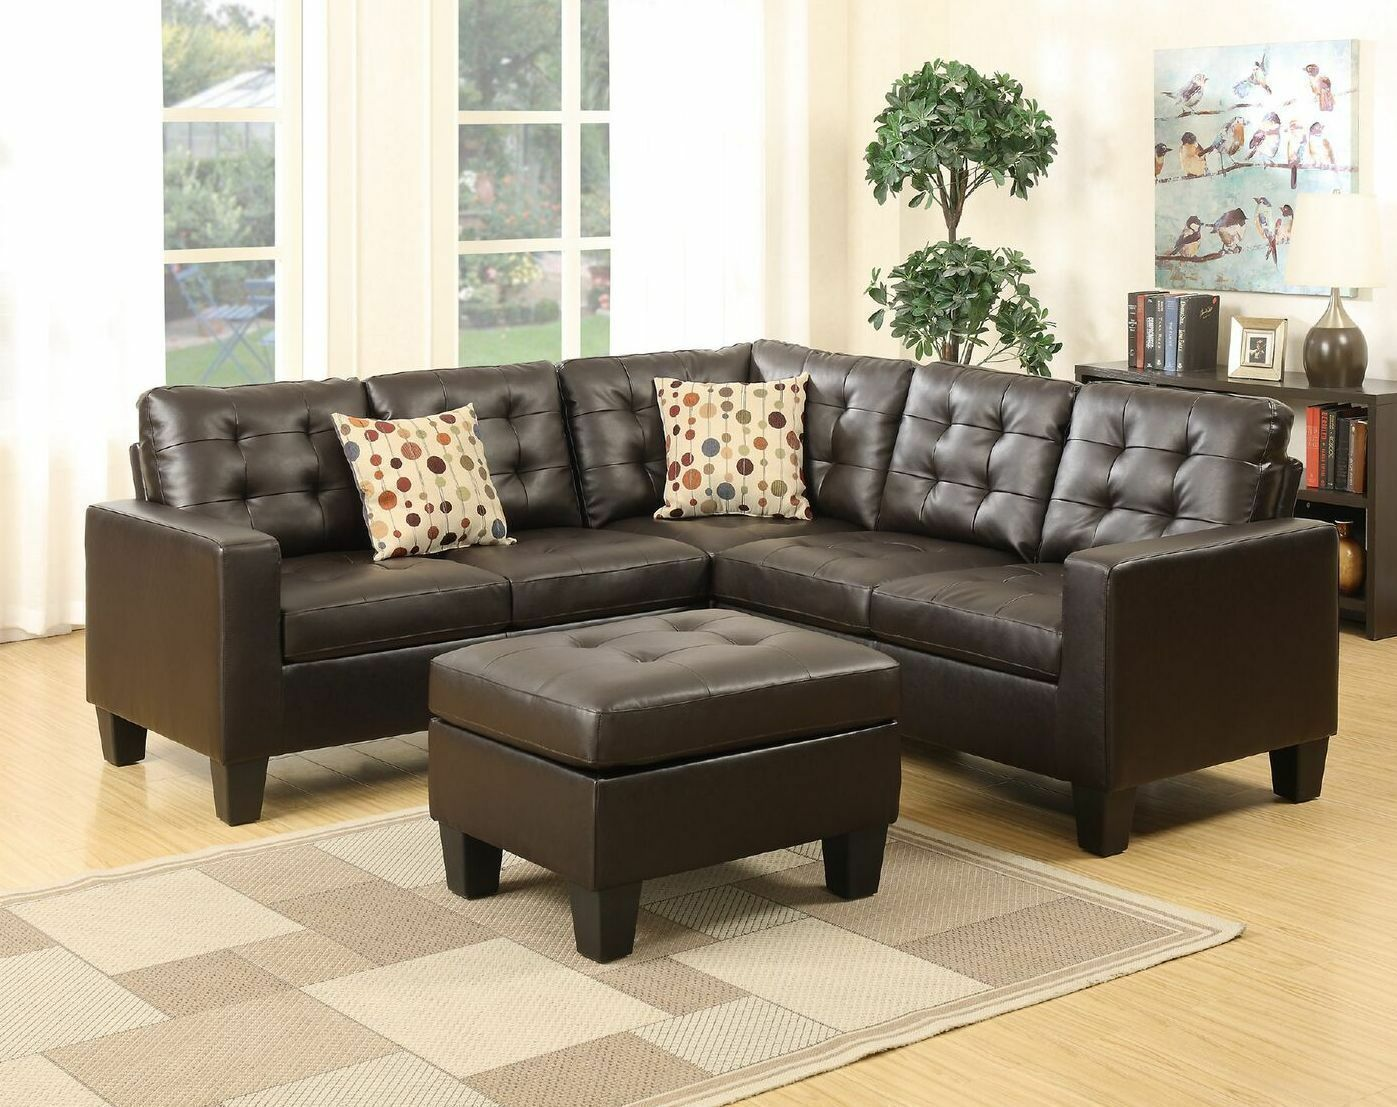 Bobkona Claudia Bonded Leather 4Piece SECTIONAL with Ottoman Set in  Espresso NEW